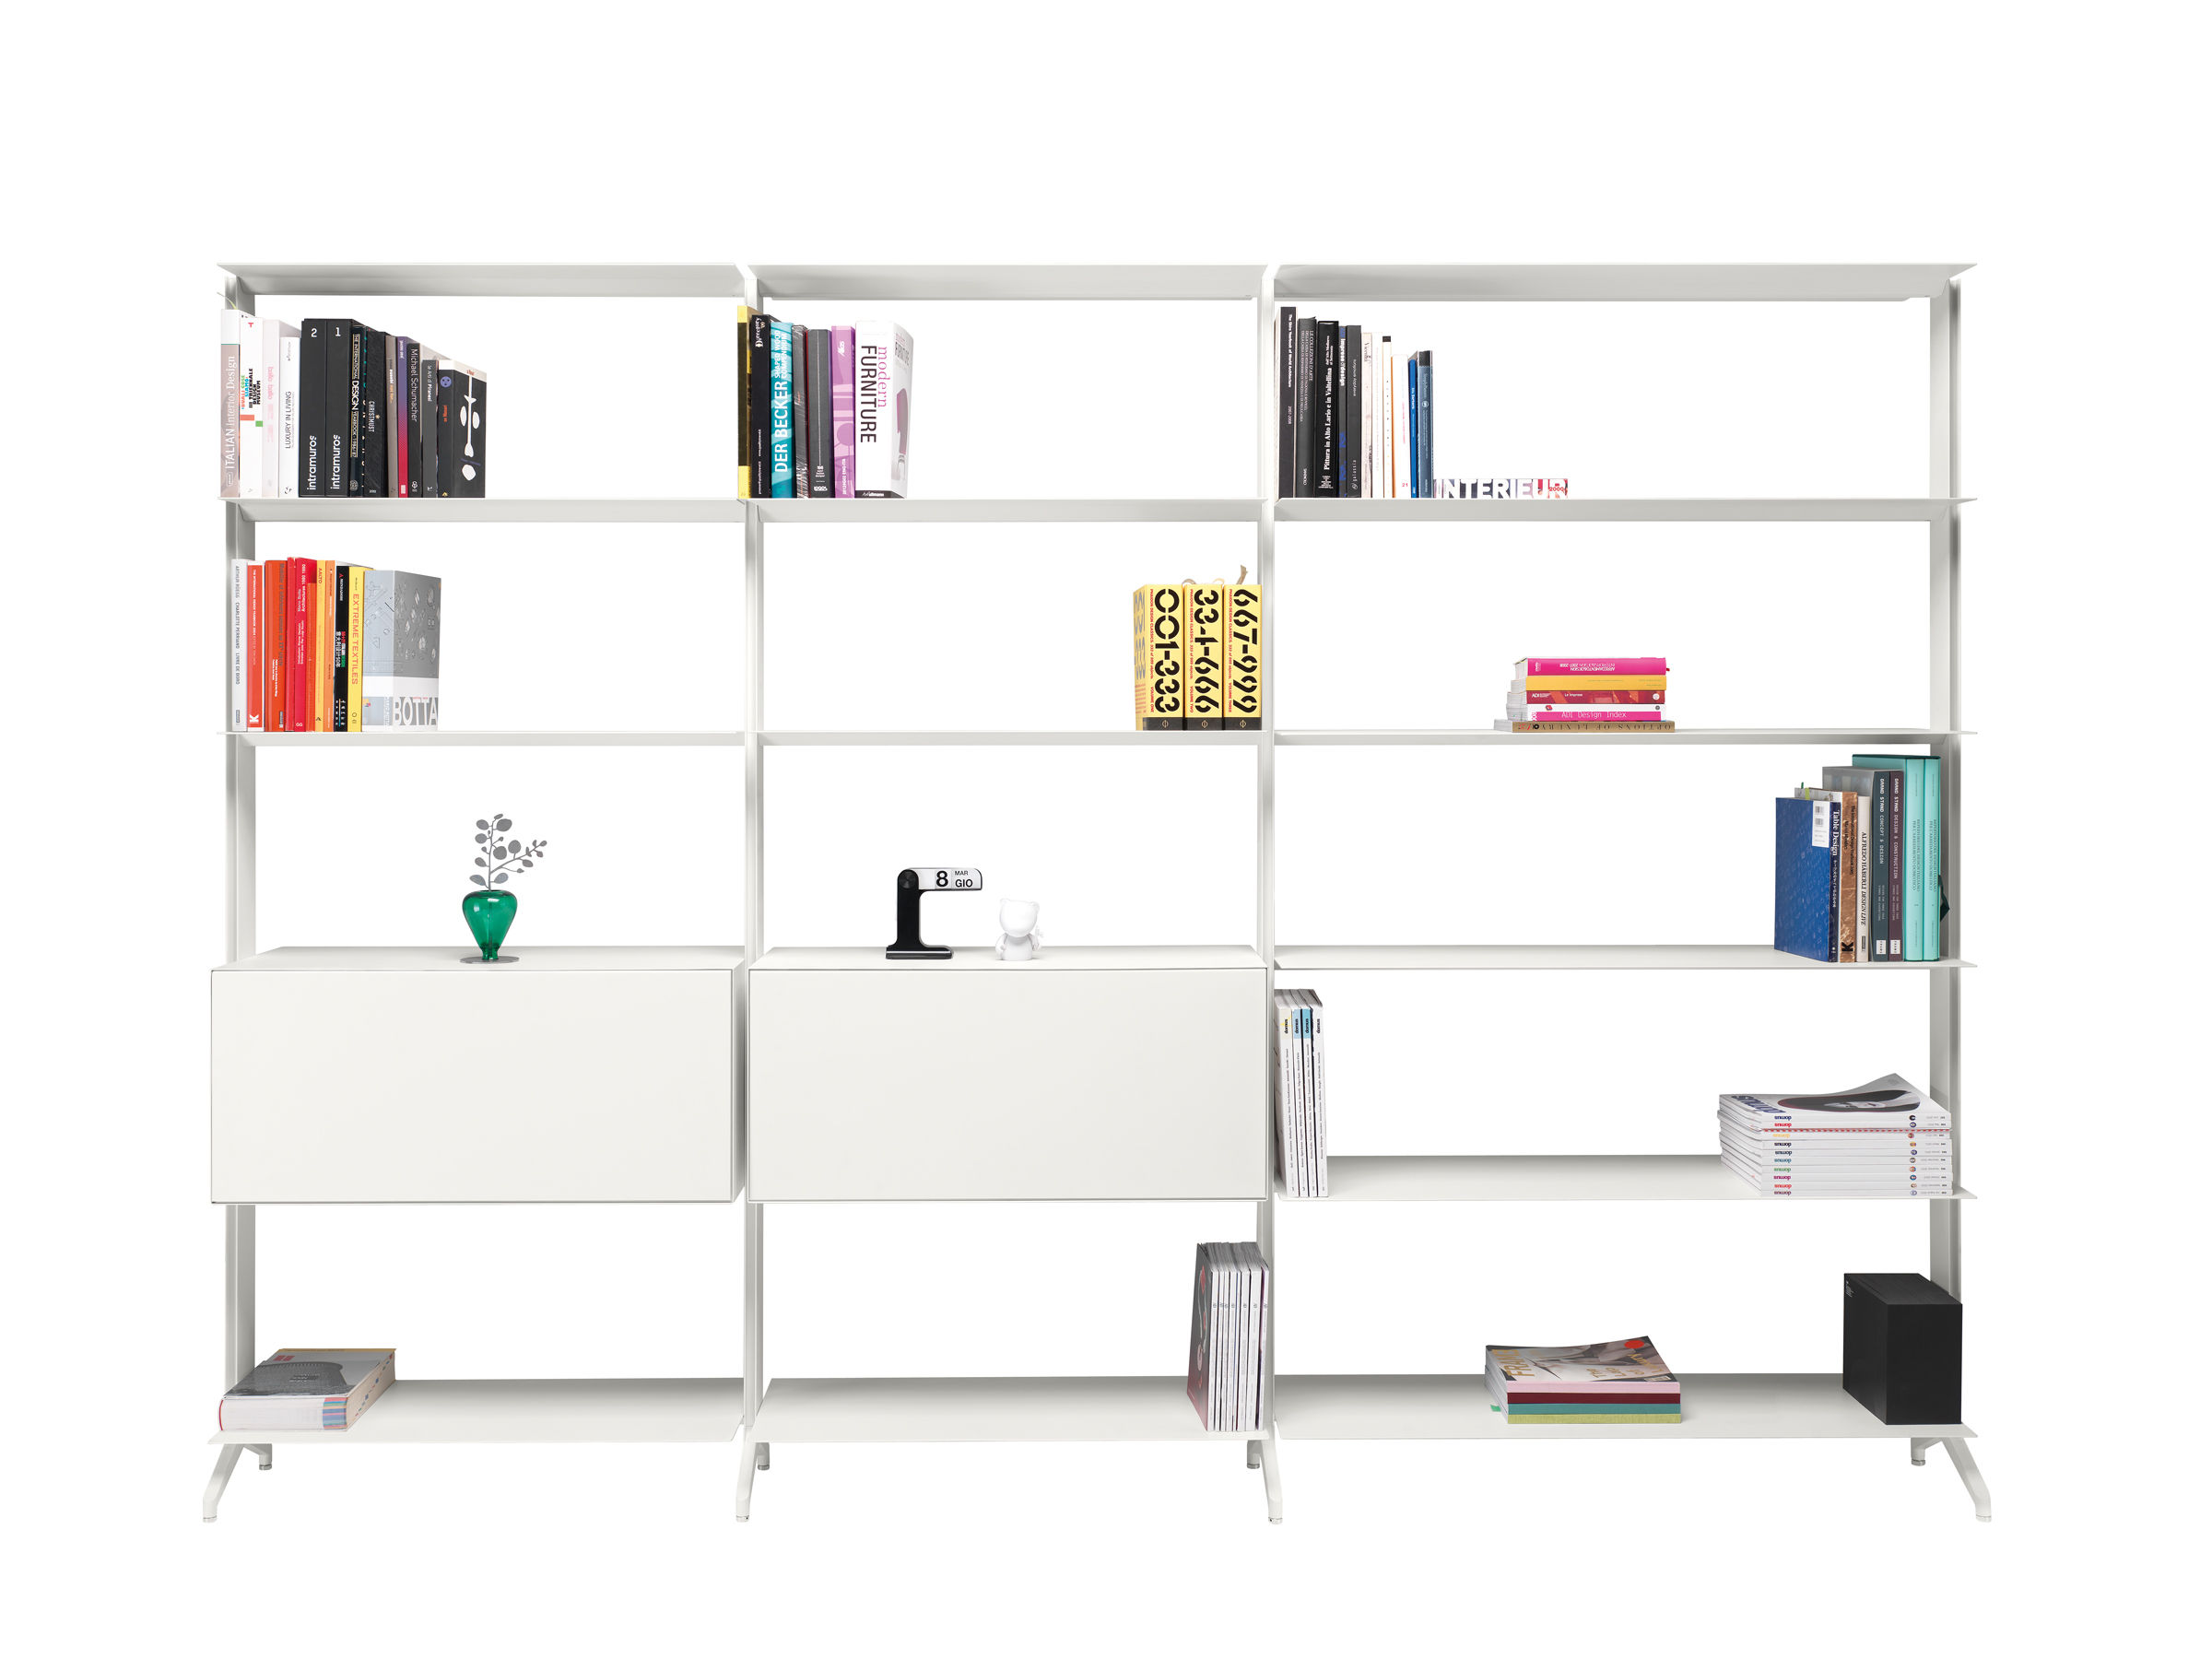 Furniture - Bookcases & Bookshelves - Aline Bookcase - 2 drawers - L 302 x H 205,2 cm by Alias - White - Lacquered extruded aluminium